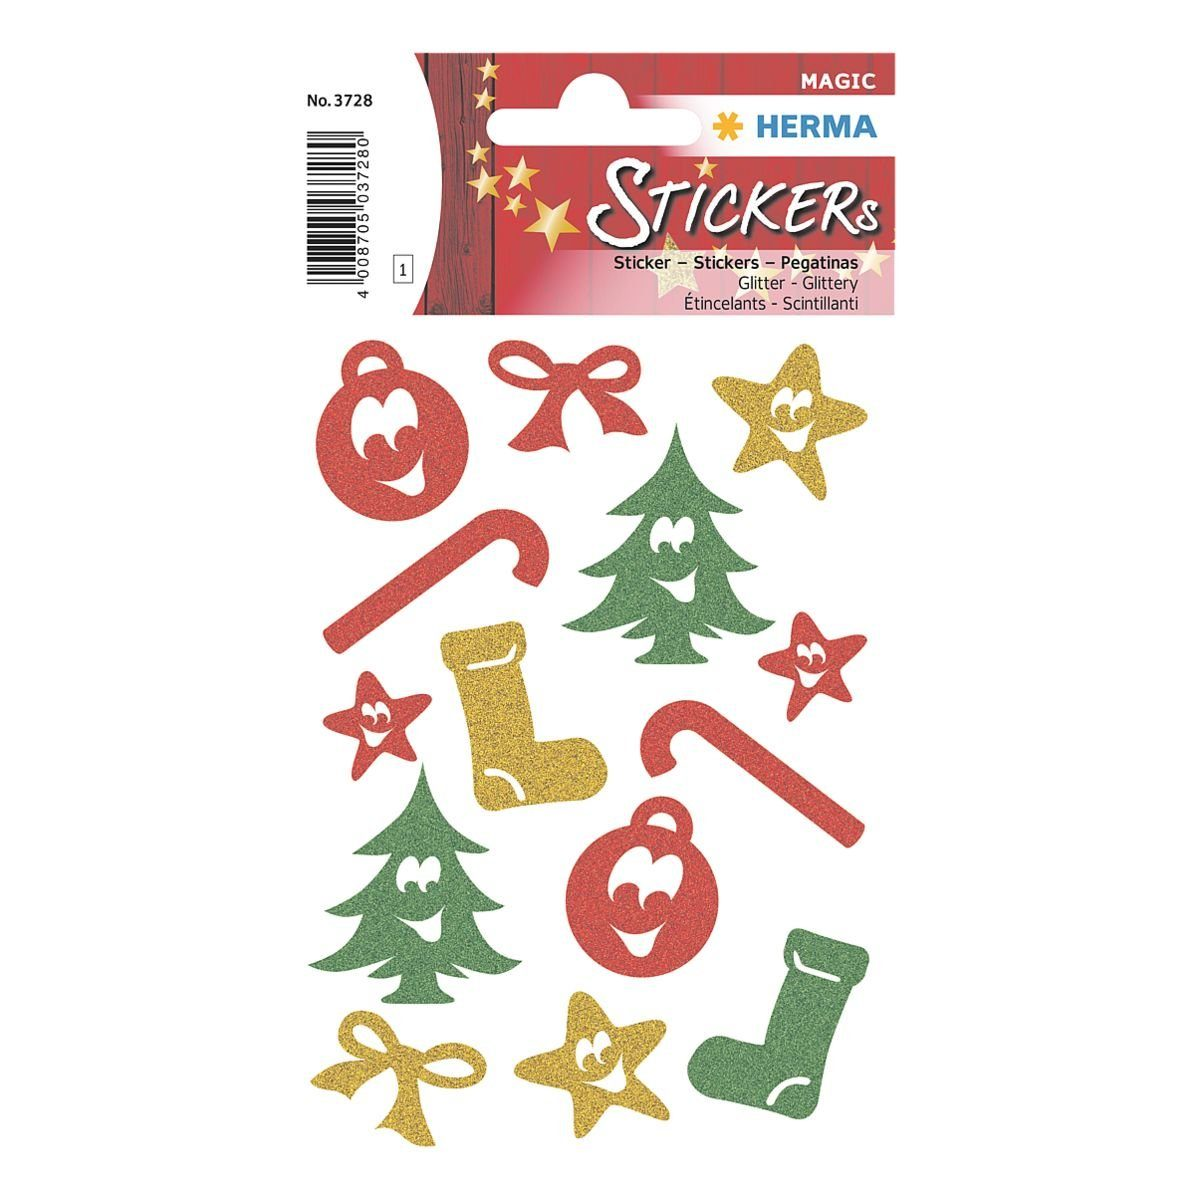 Herma Weihnachts-Sticker »Magic Symbole«